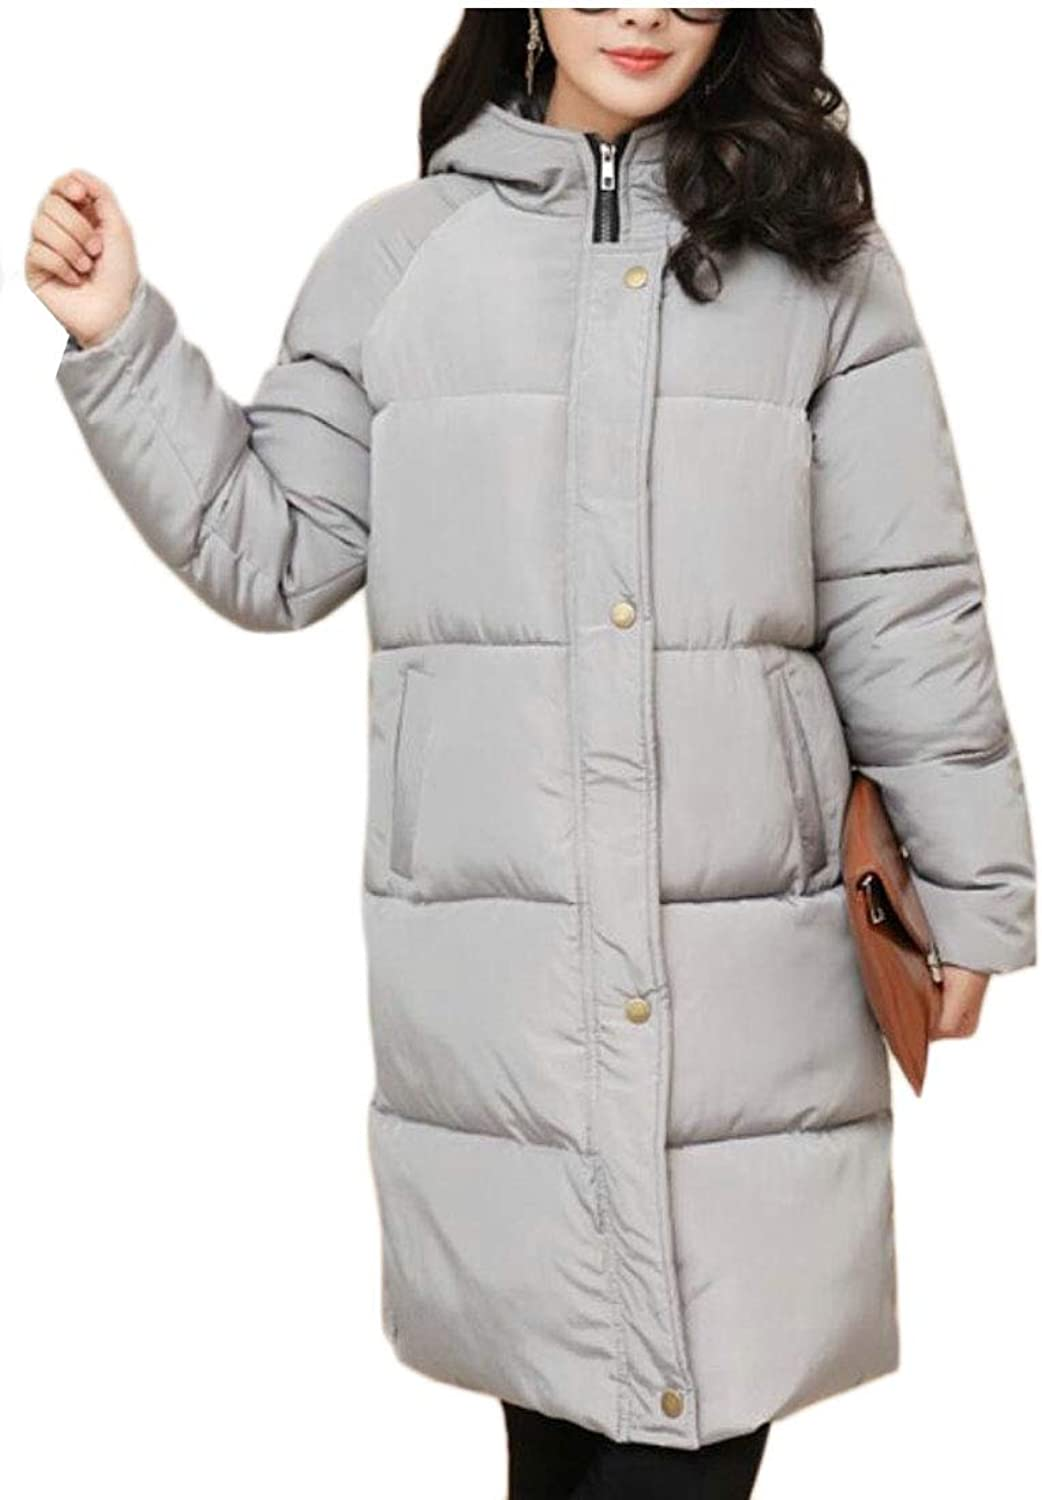 Gocgt Women Winter Long Down Jacket Quilted Puffer Thicken Overcoat Down Jacket